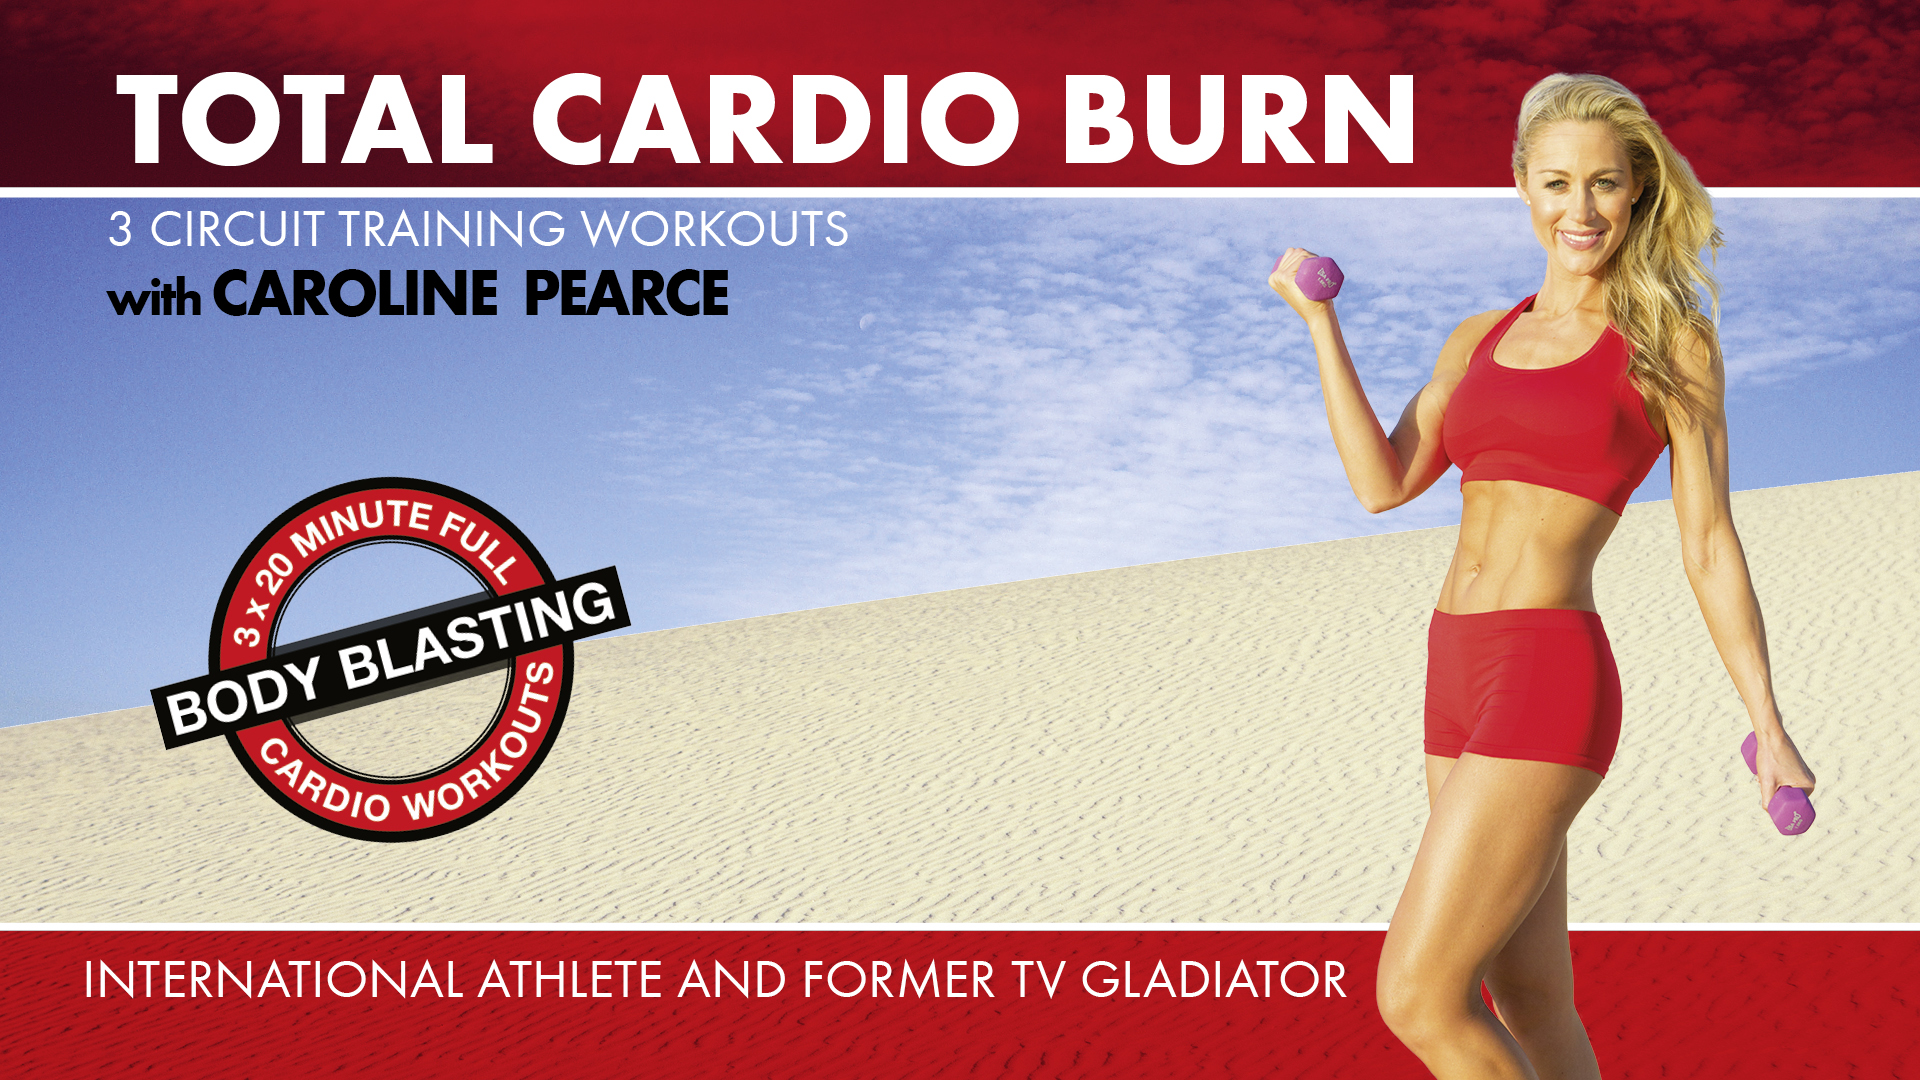 NS13018_CarolinePearce_TotalCardioBurn_1920_Artwork